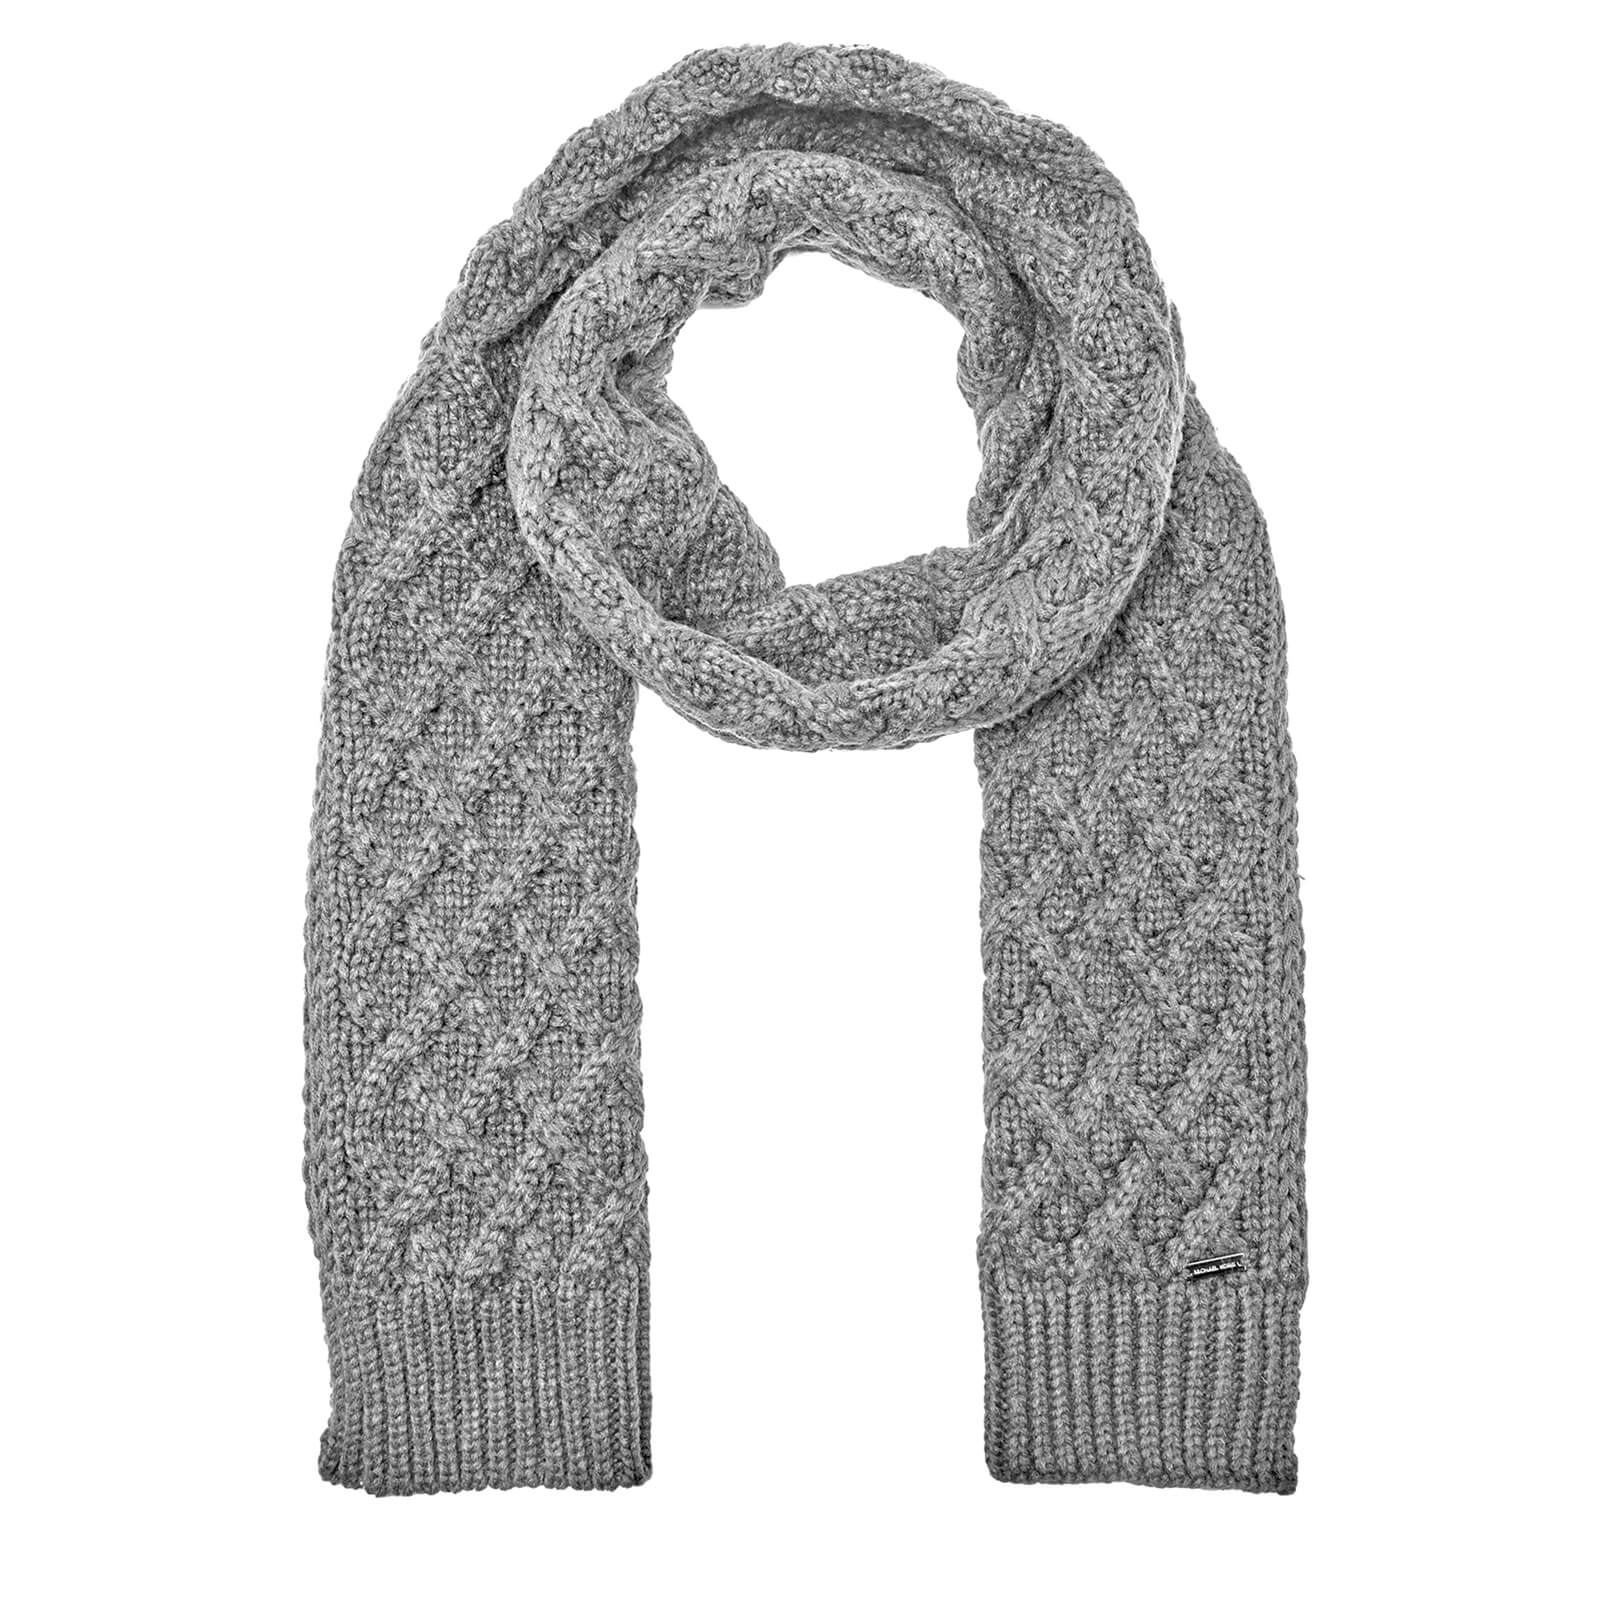 Michael Kors Men S Cable Knit Scarf Heather Grey Free Uk